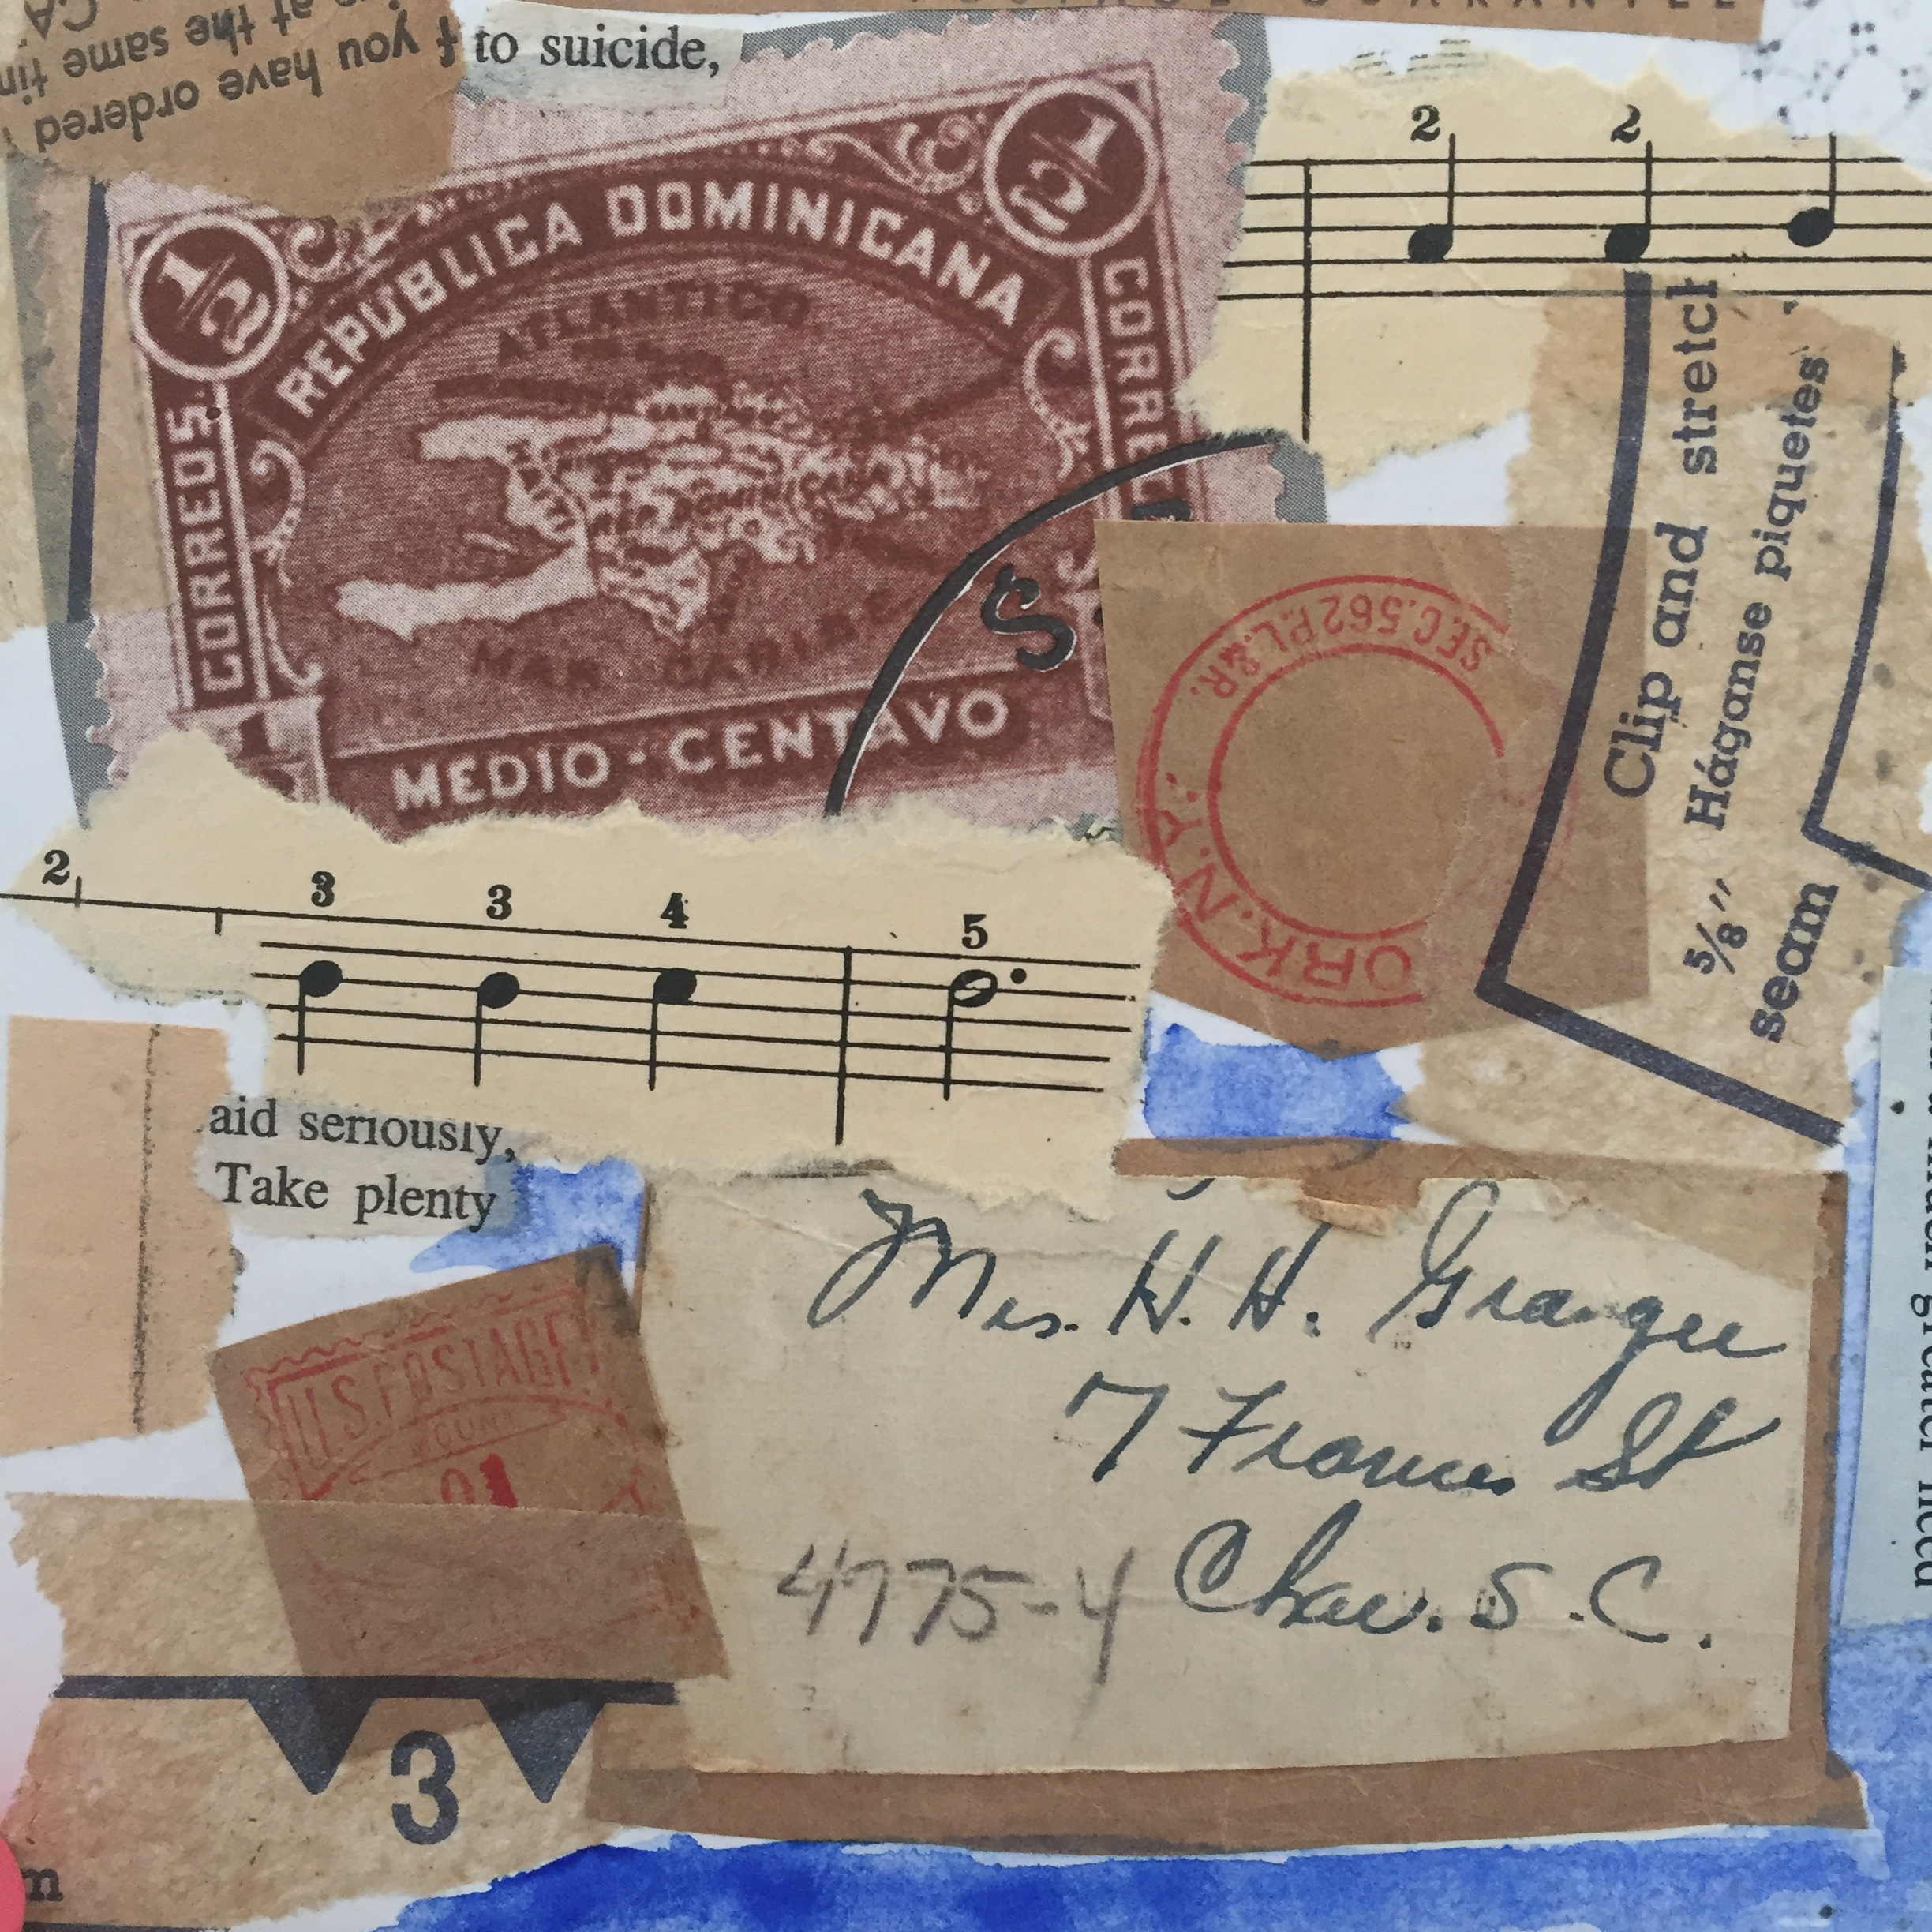 Images from books, old patterns, handwritten notes, sheet music and book pages can all make interesting collages.